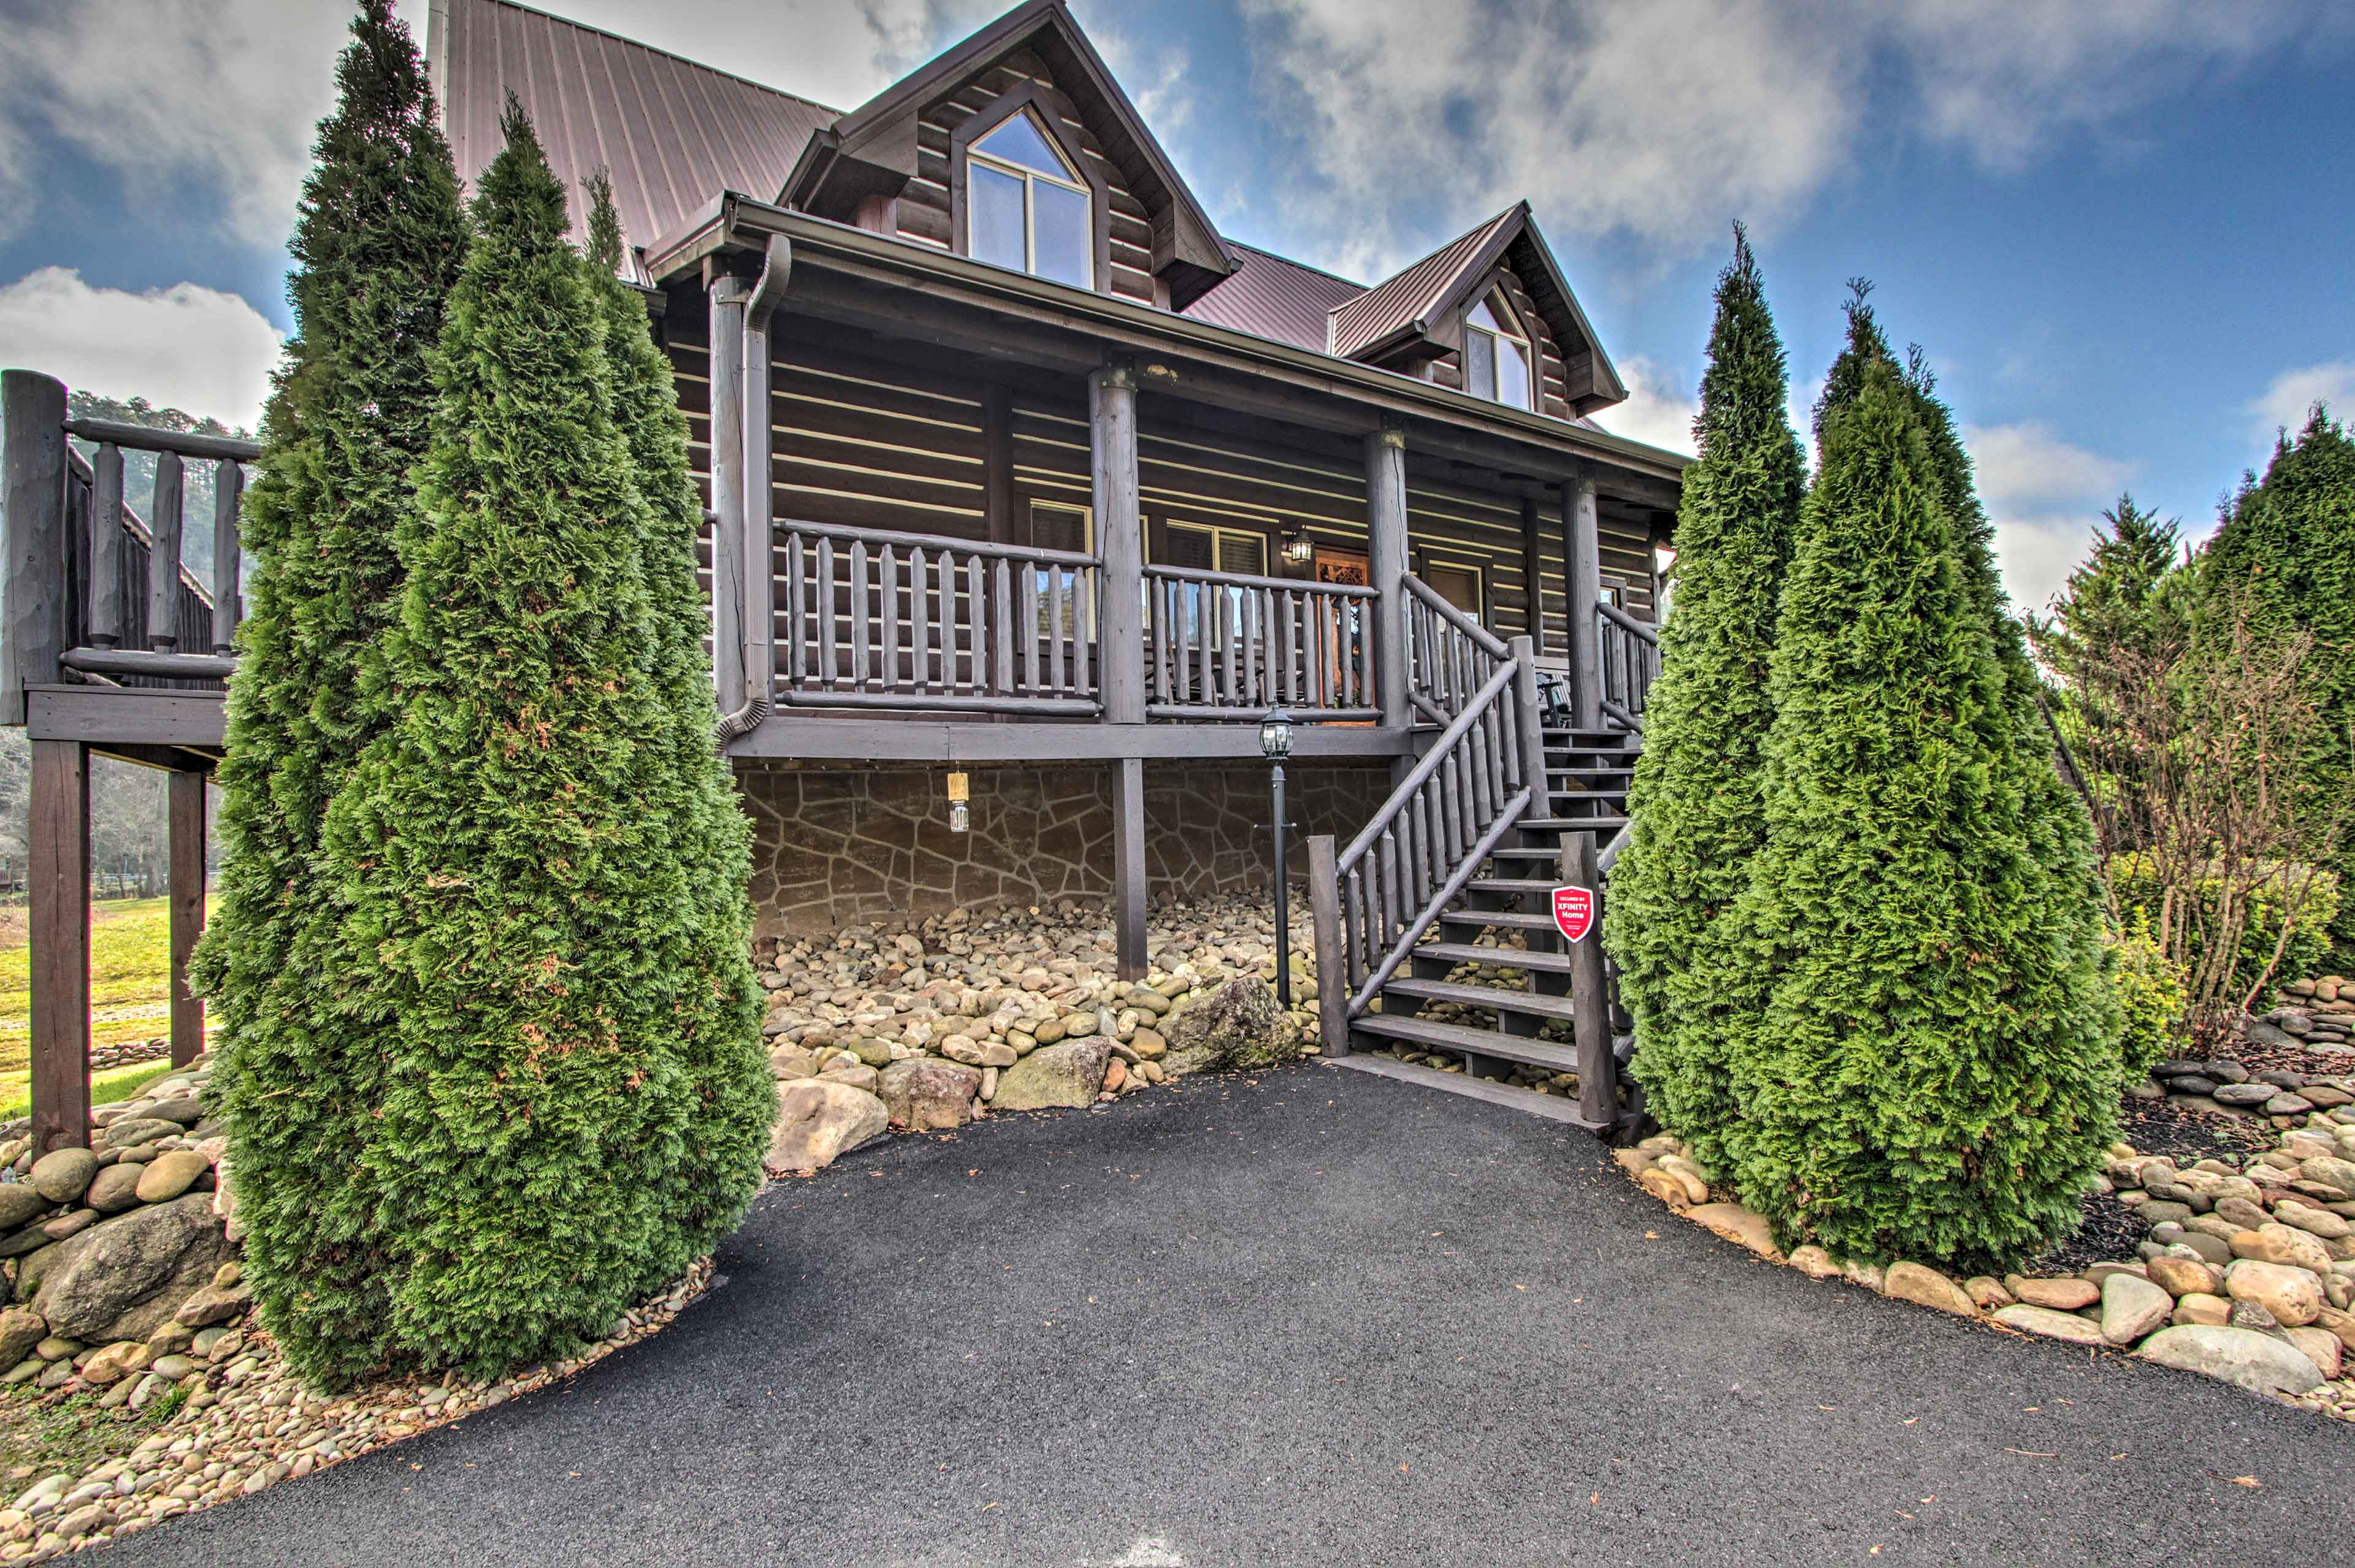 All the attractions of Pigeon Forge await mere minutes from this mountain manor!